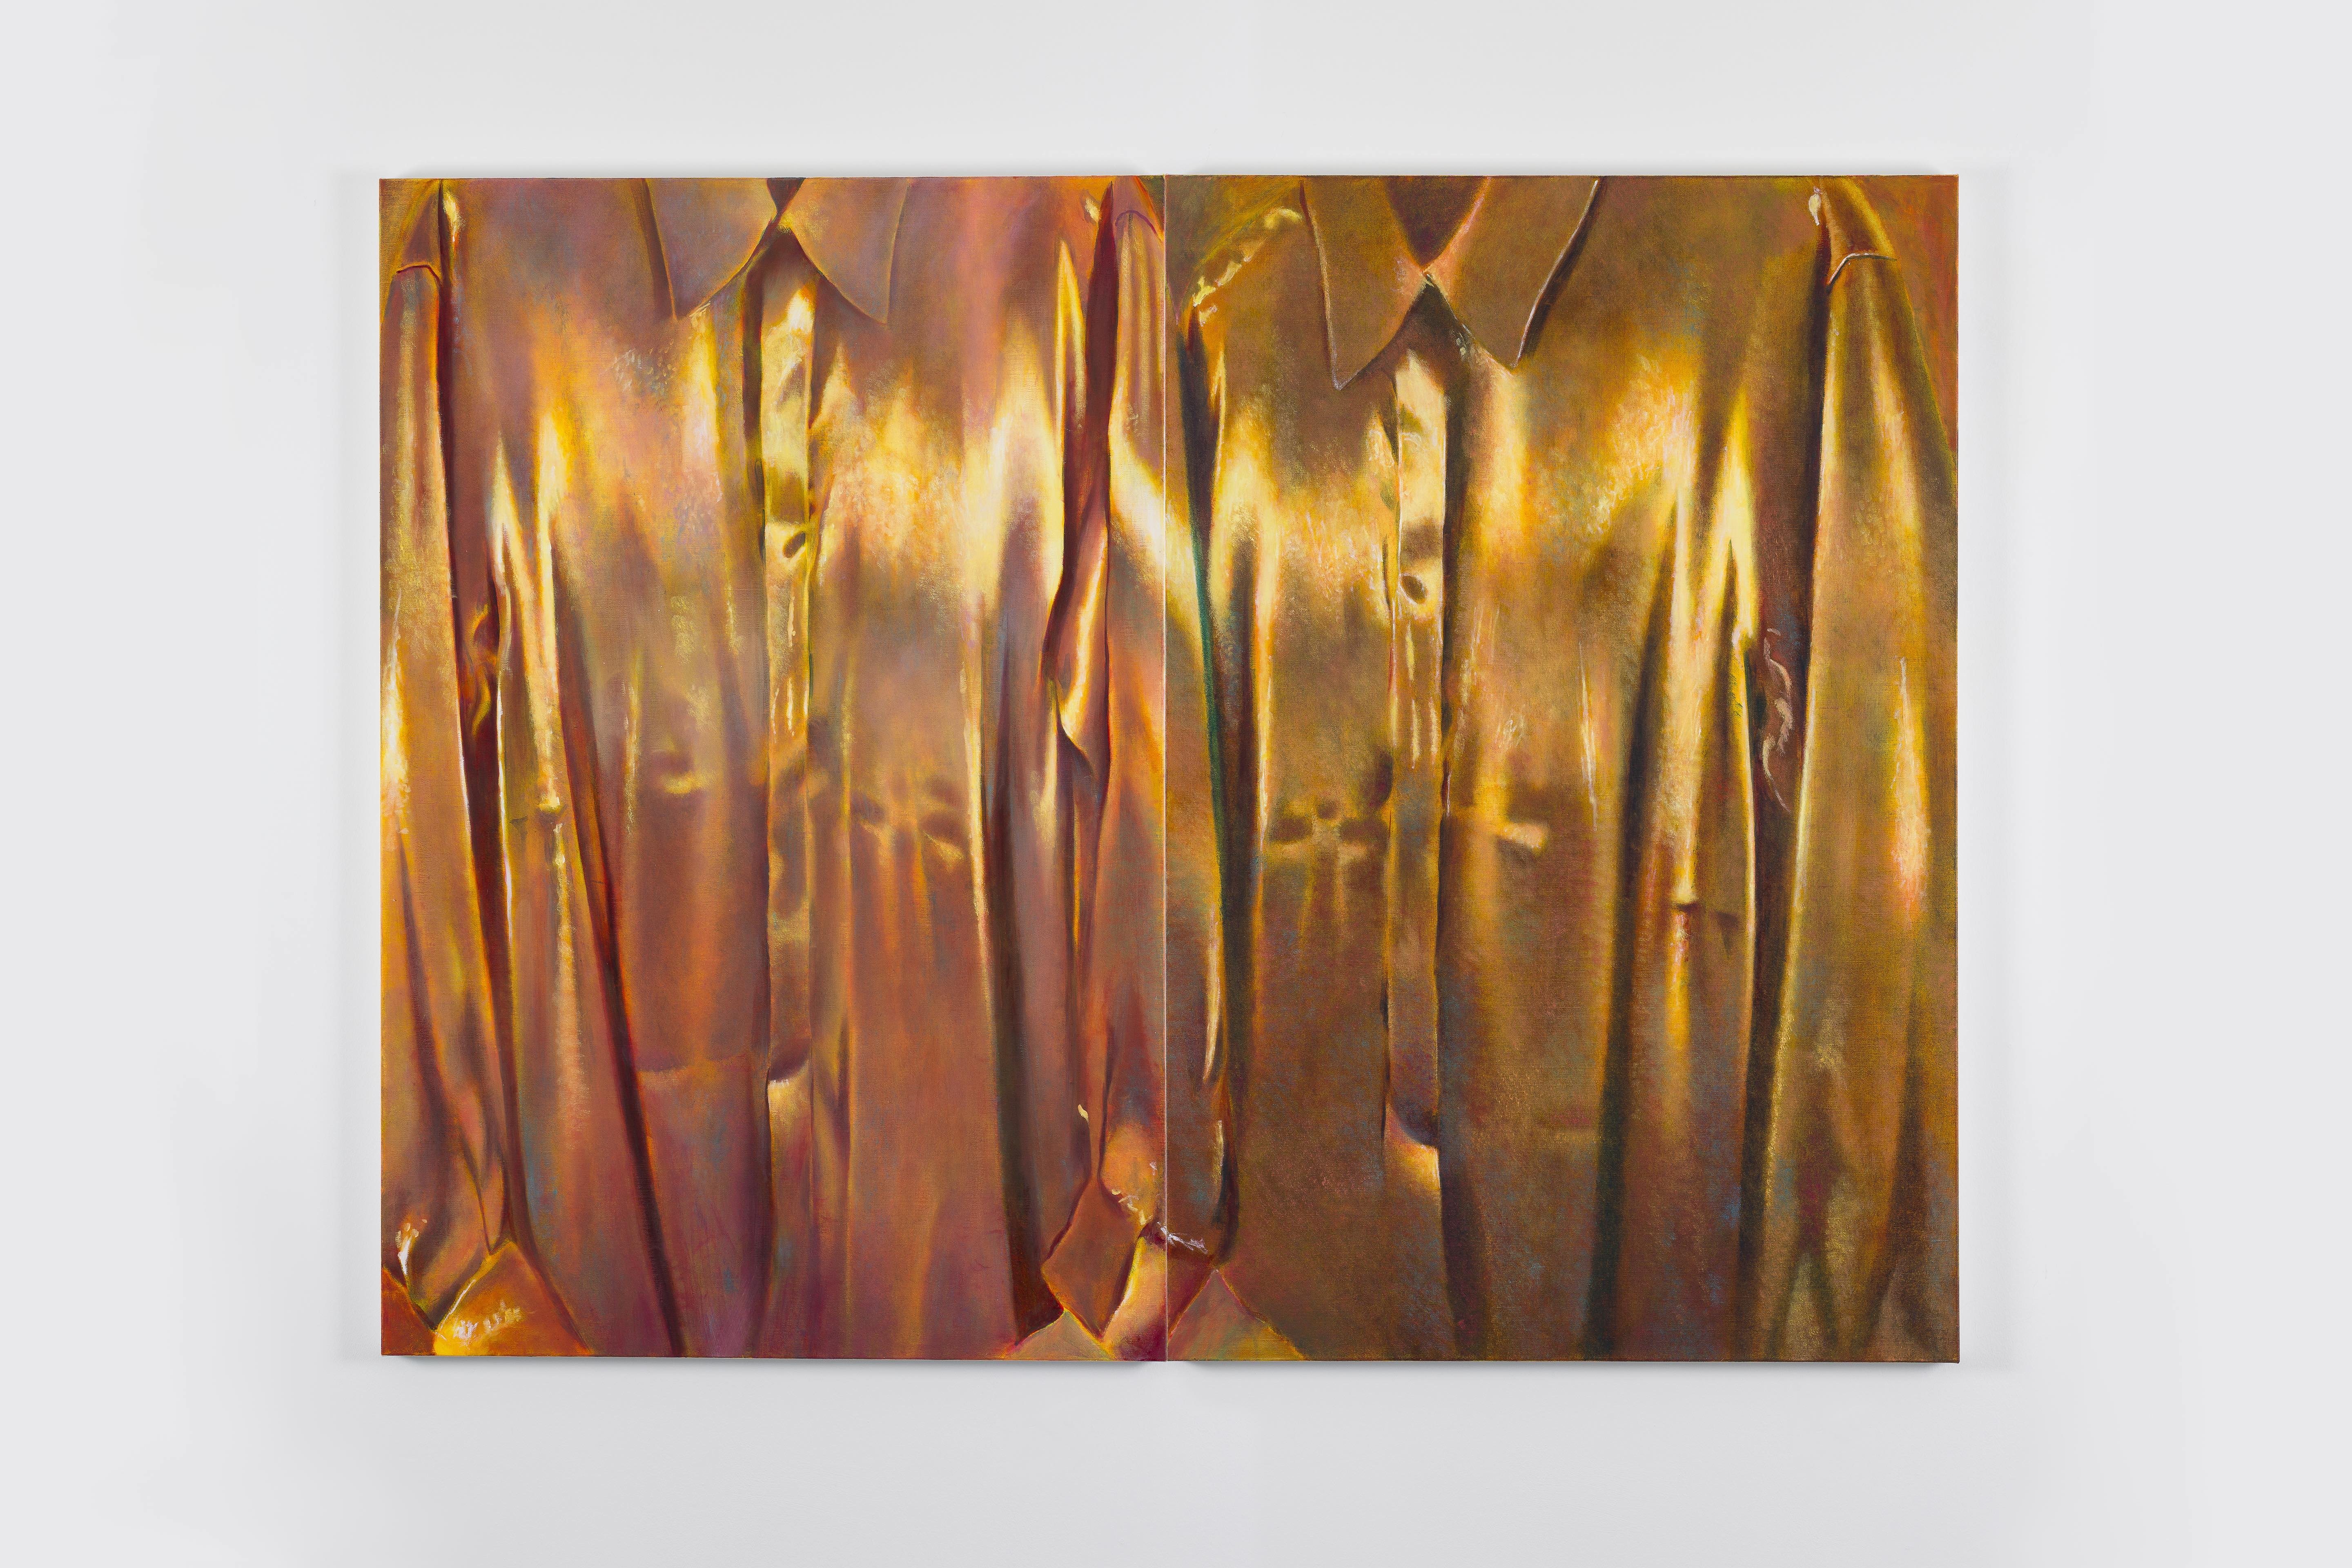 Wager, Louise Giovanelli, 2020, Oil on canvas, diptych, 120 x 160 x 3.5 cm | 47 1/4 x 63 x 1 3/8 in | Courtesy of the Artist and GRIMM Amsterdam | New York, ©The Artist, Photo: Sonia Mangiapane